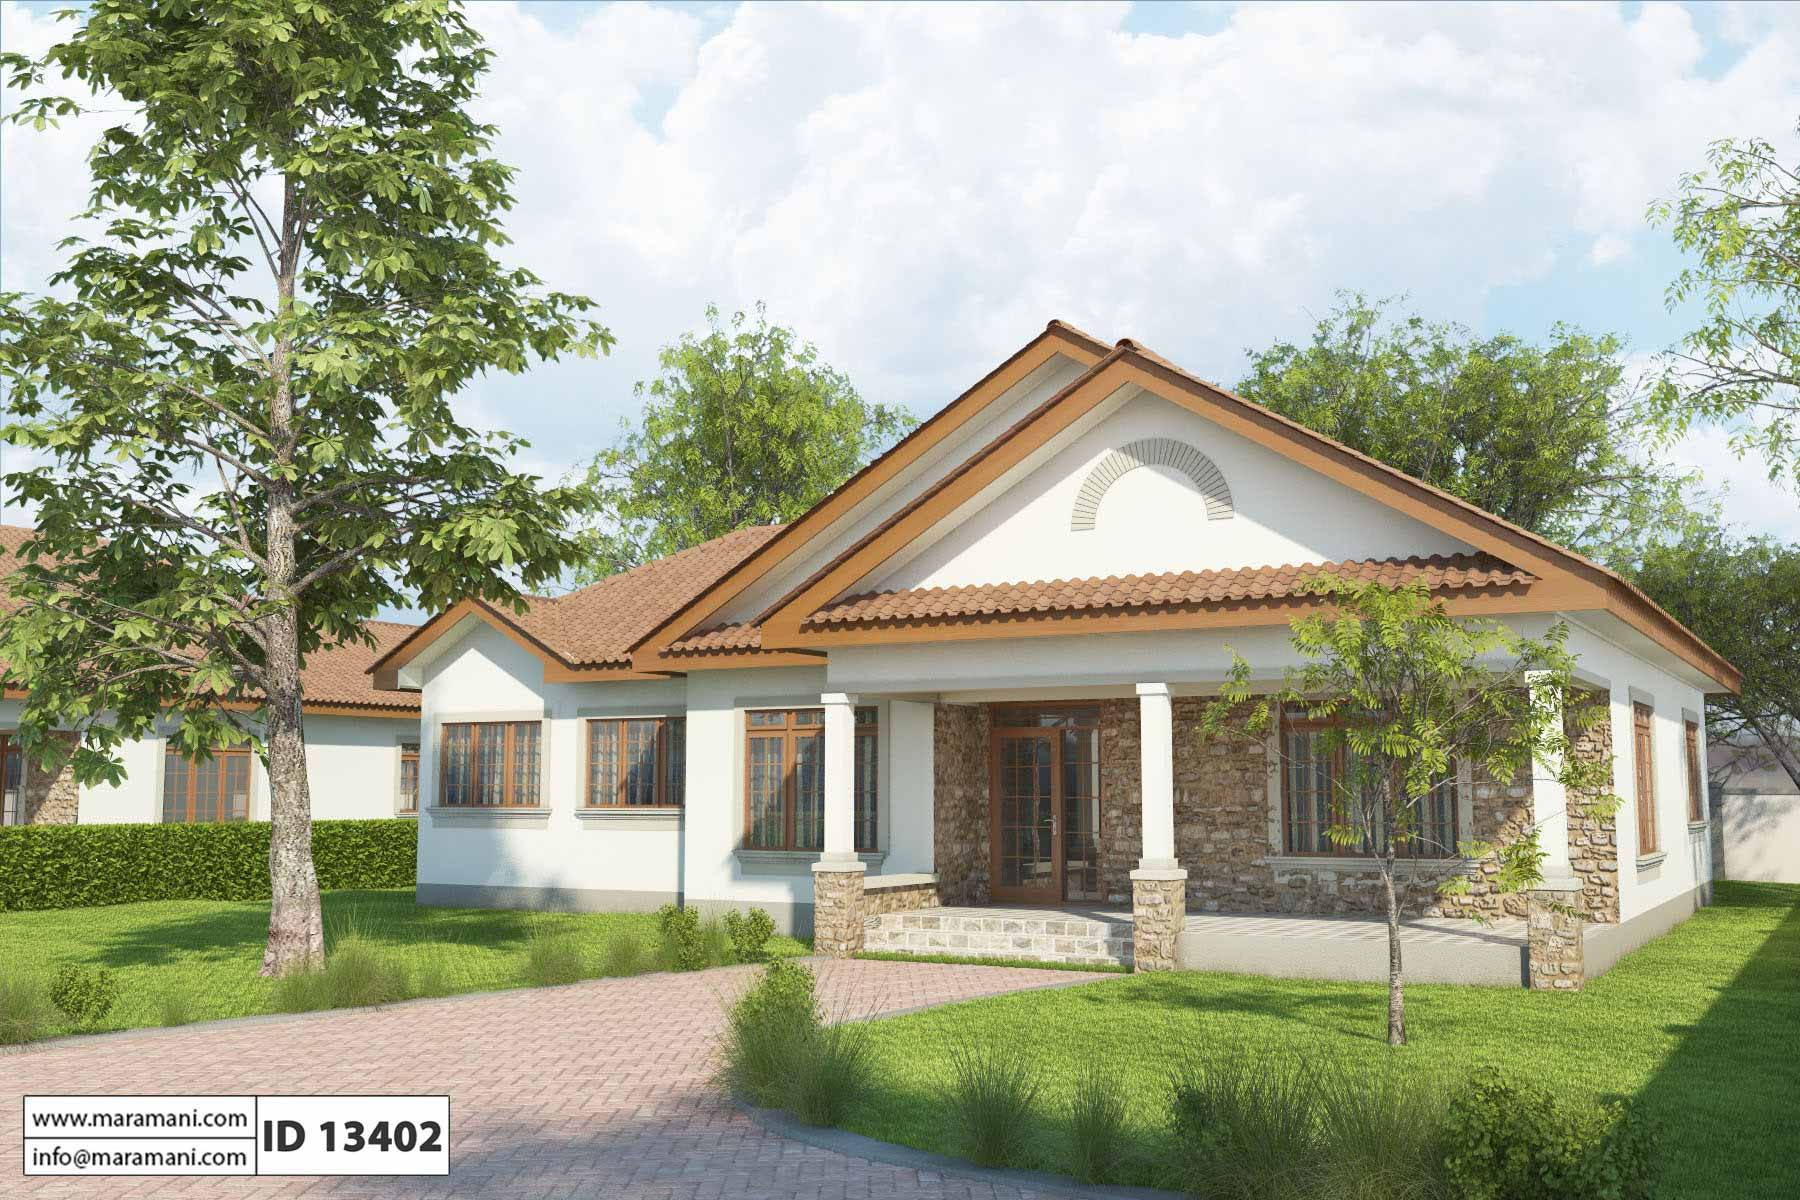 Simple 3 bedroom house plan id 13402 house designs by for 3 bed room home